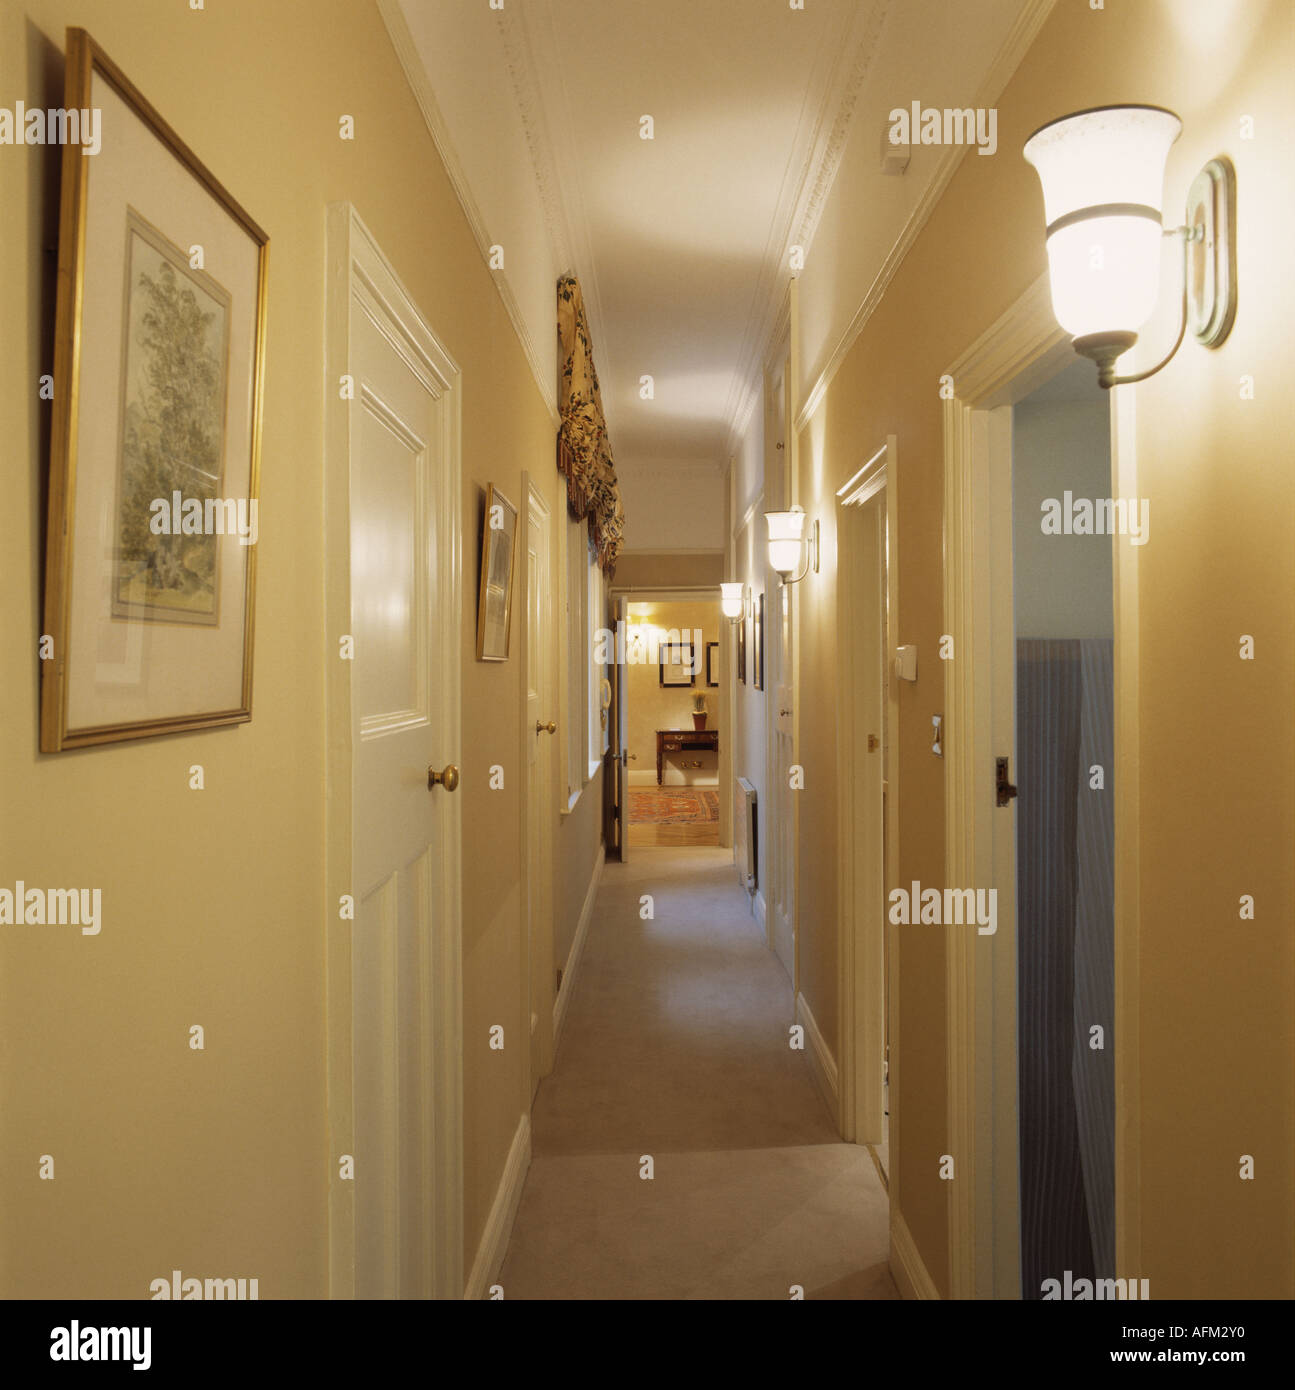 Lighted wall lights in hotel corridor Stock Photo: 7985711 - Alamy